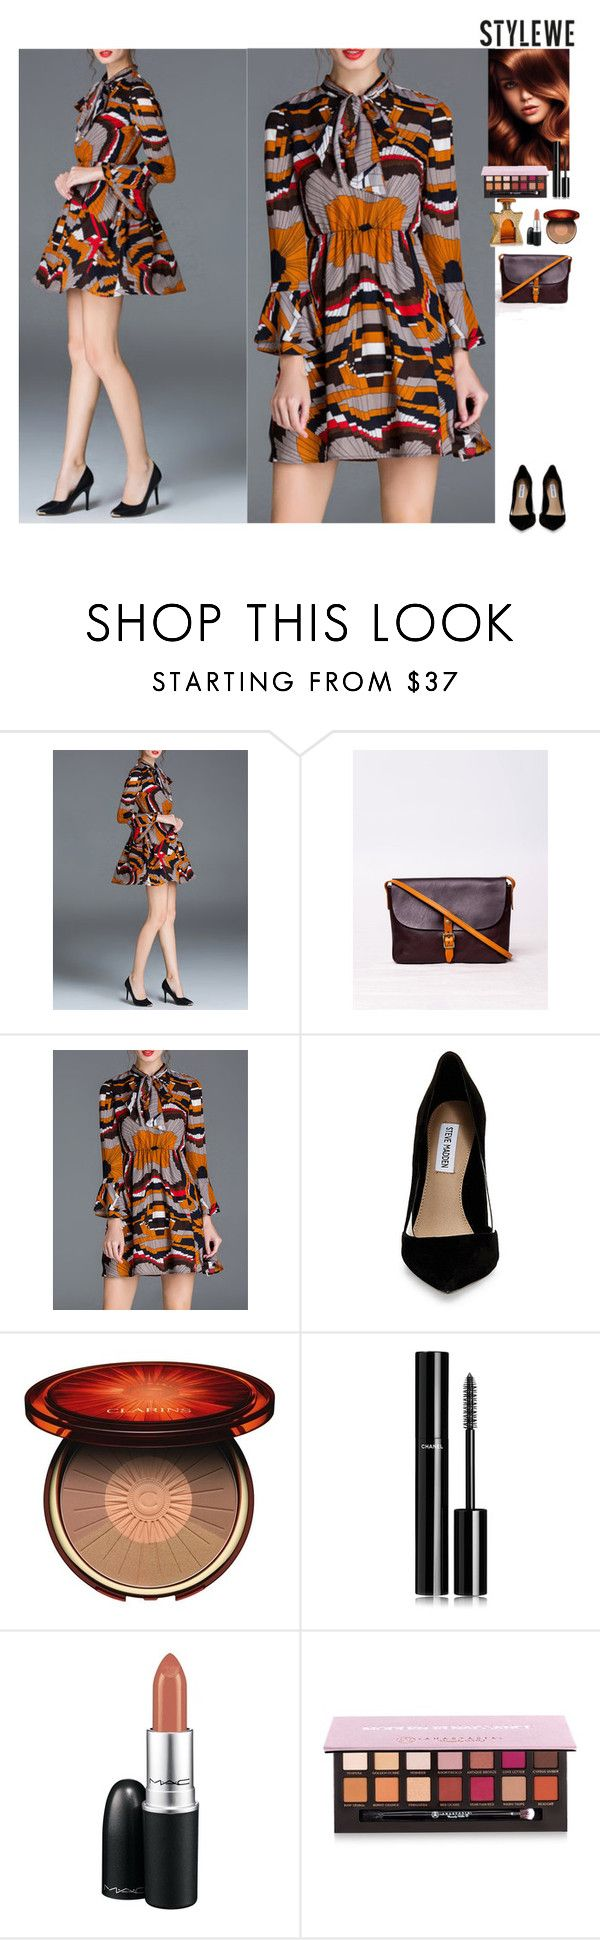 Fall outfit StyleWe by eliza-redkina on Polyvore featuring мода, Steve Madden, Chanel, Anastasia Beverly Hills, Clarins, MAC Cosmetics, Bond No. 9, outfit, like and look